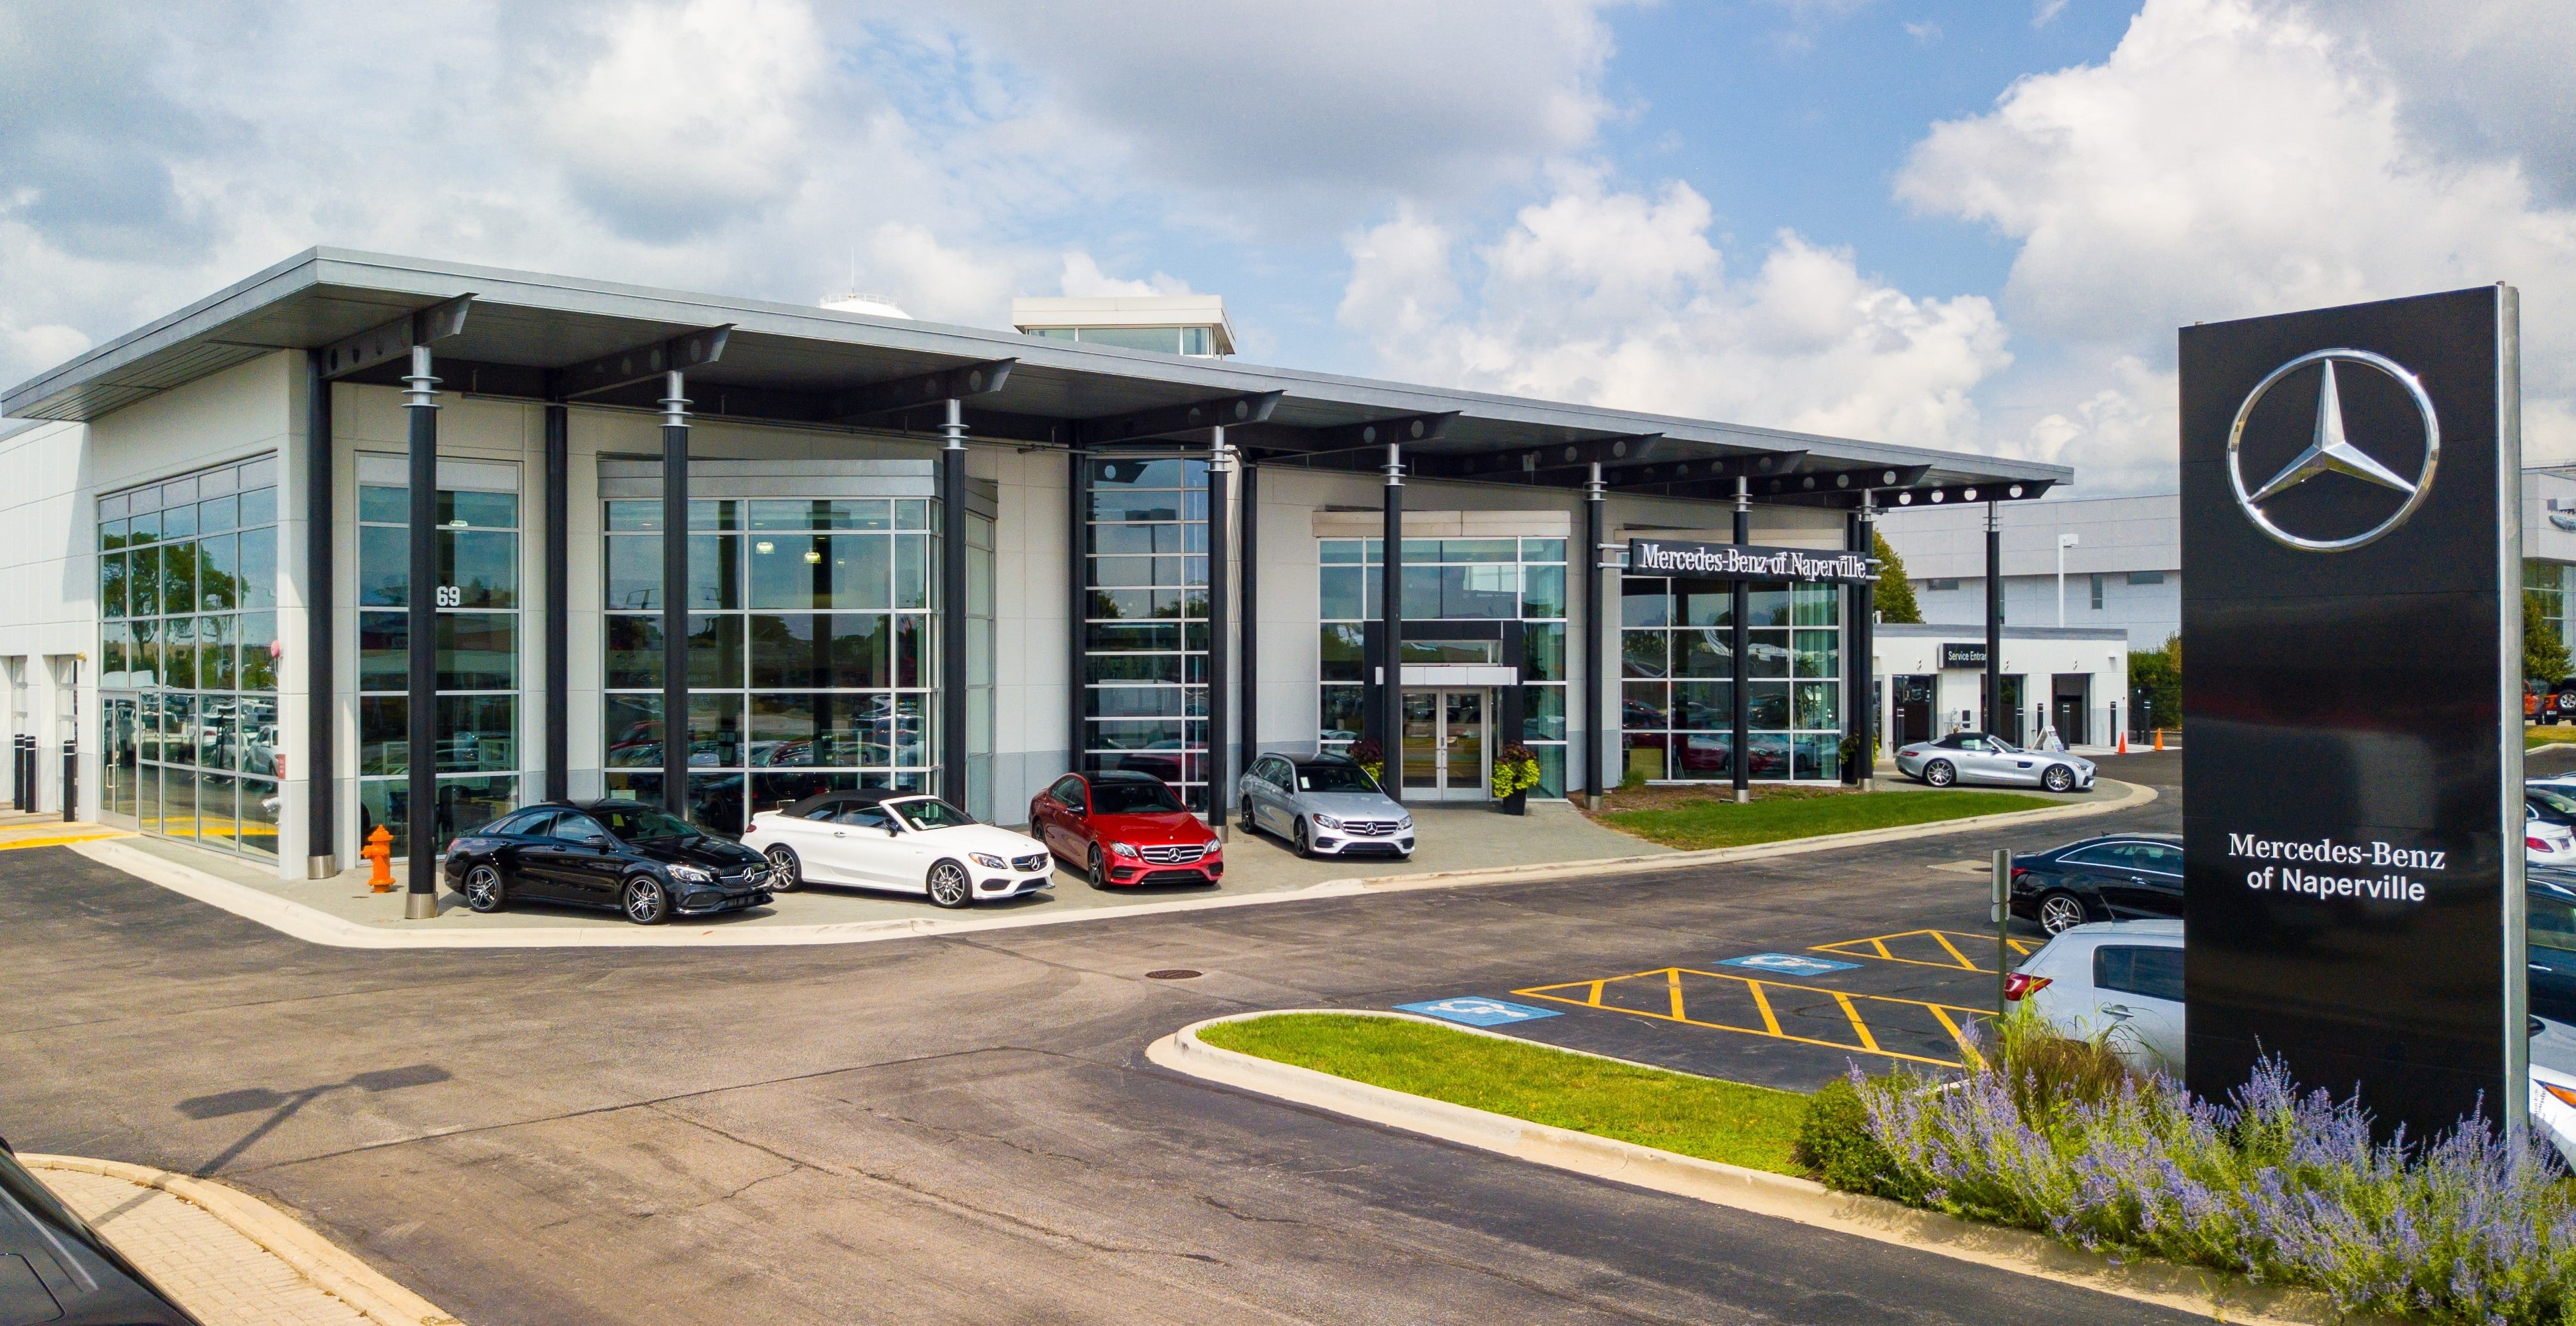 Exterior view of Mercedes-Benz of Naperville during the day